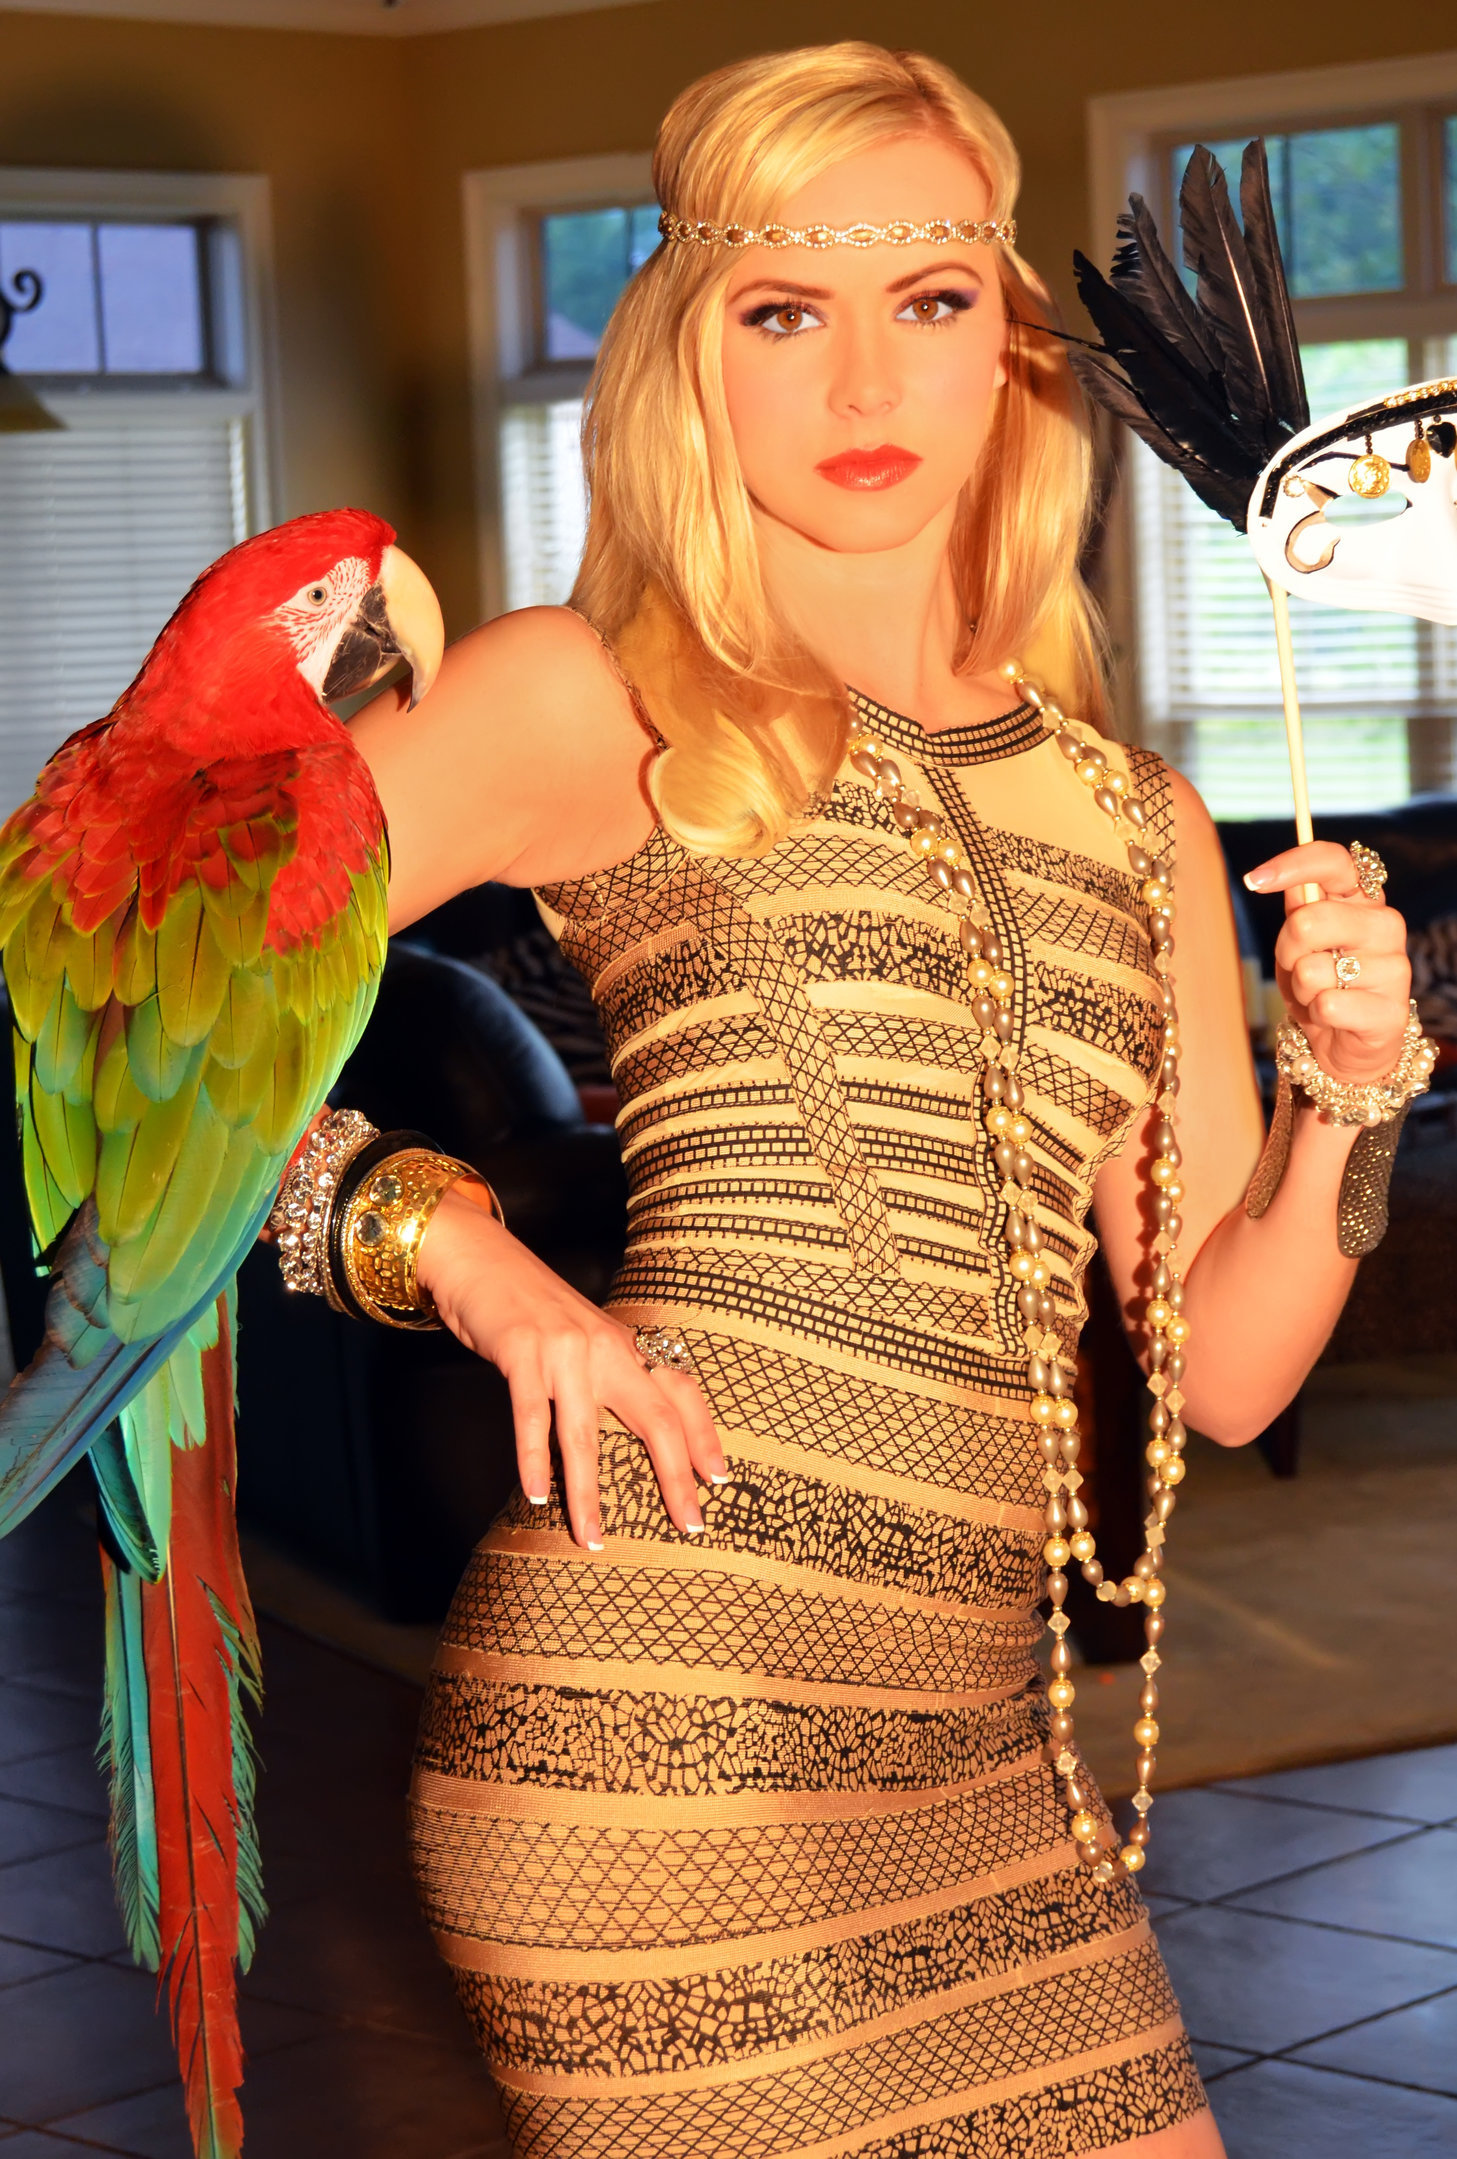 HALEY CARROLL- BEAUTY ICON and creator of LEOPARD BOUTIQUE.